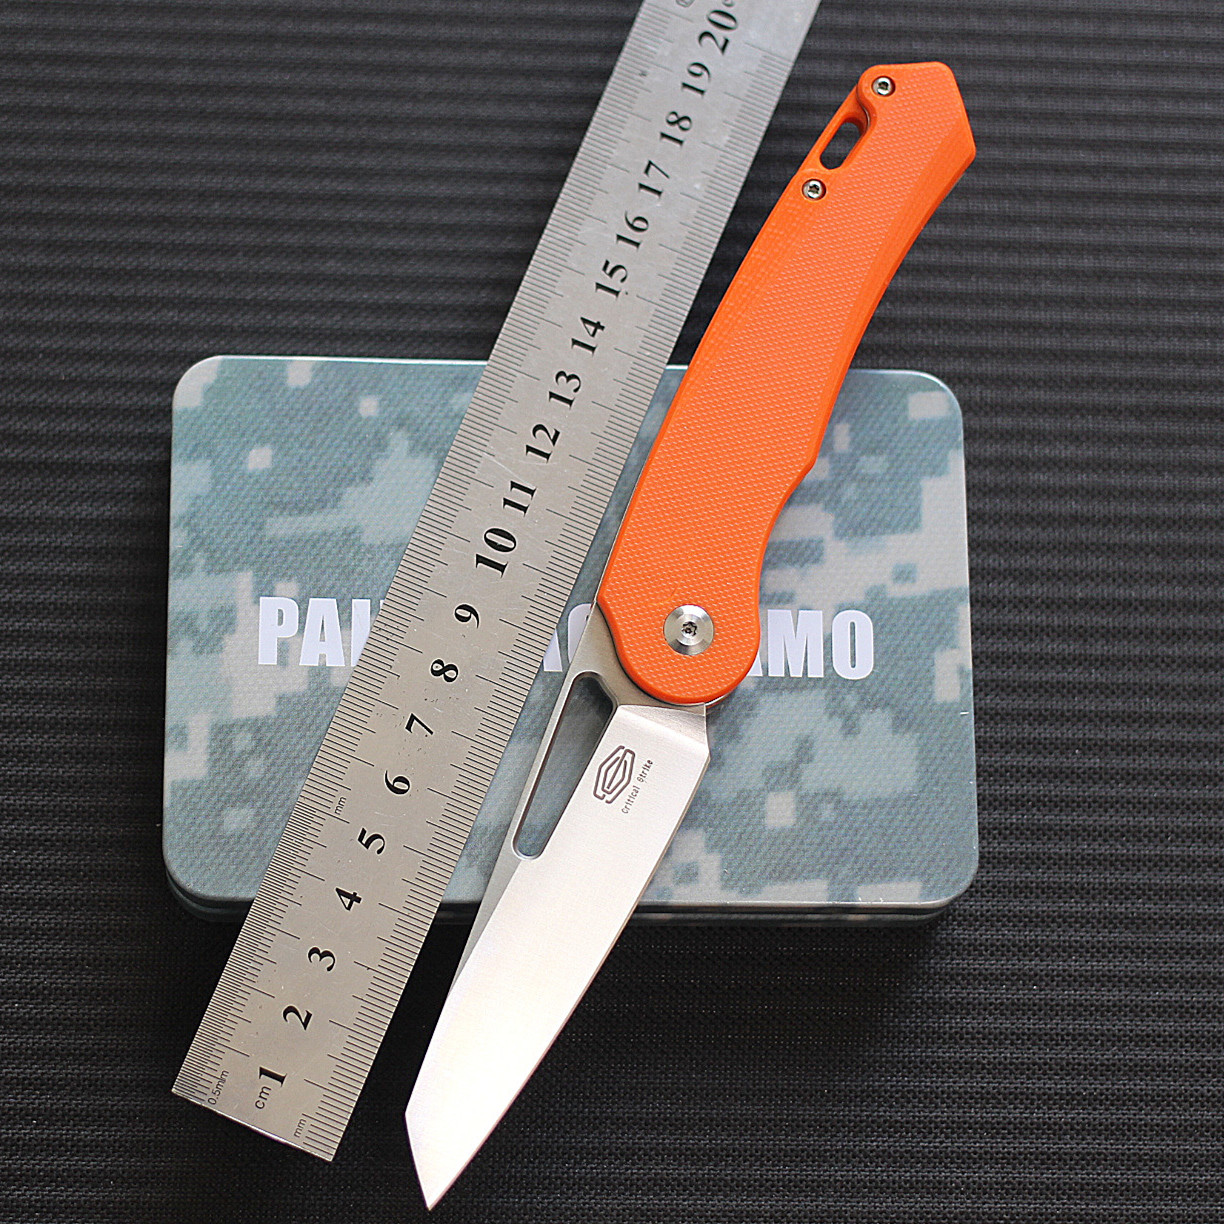 Original domestic original new work CS503 bearing D2 high hardness outdoor tool knife city commuter EDC